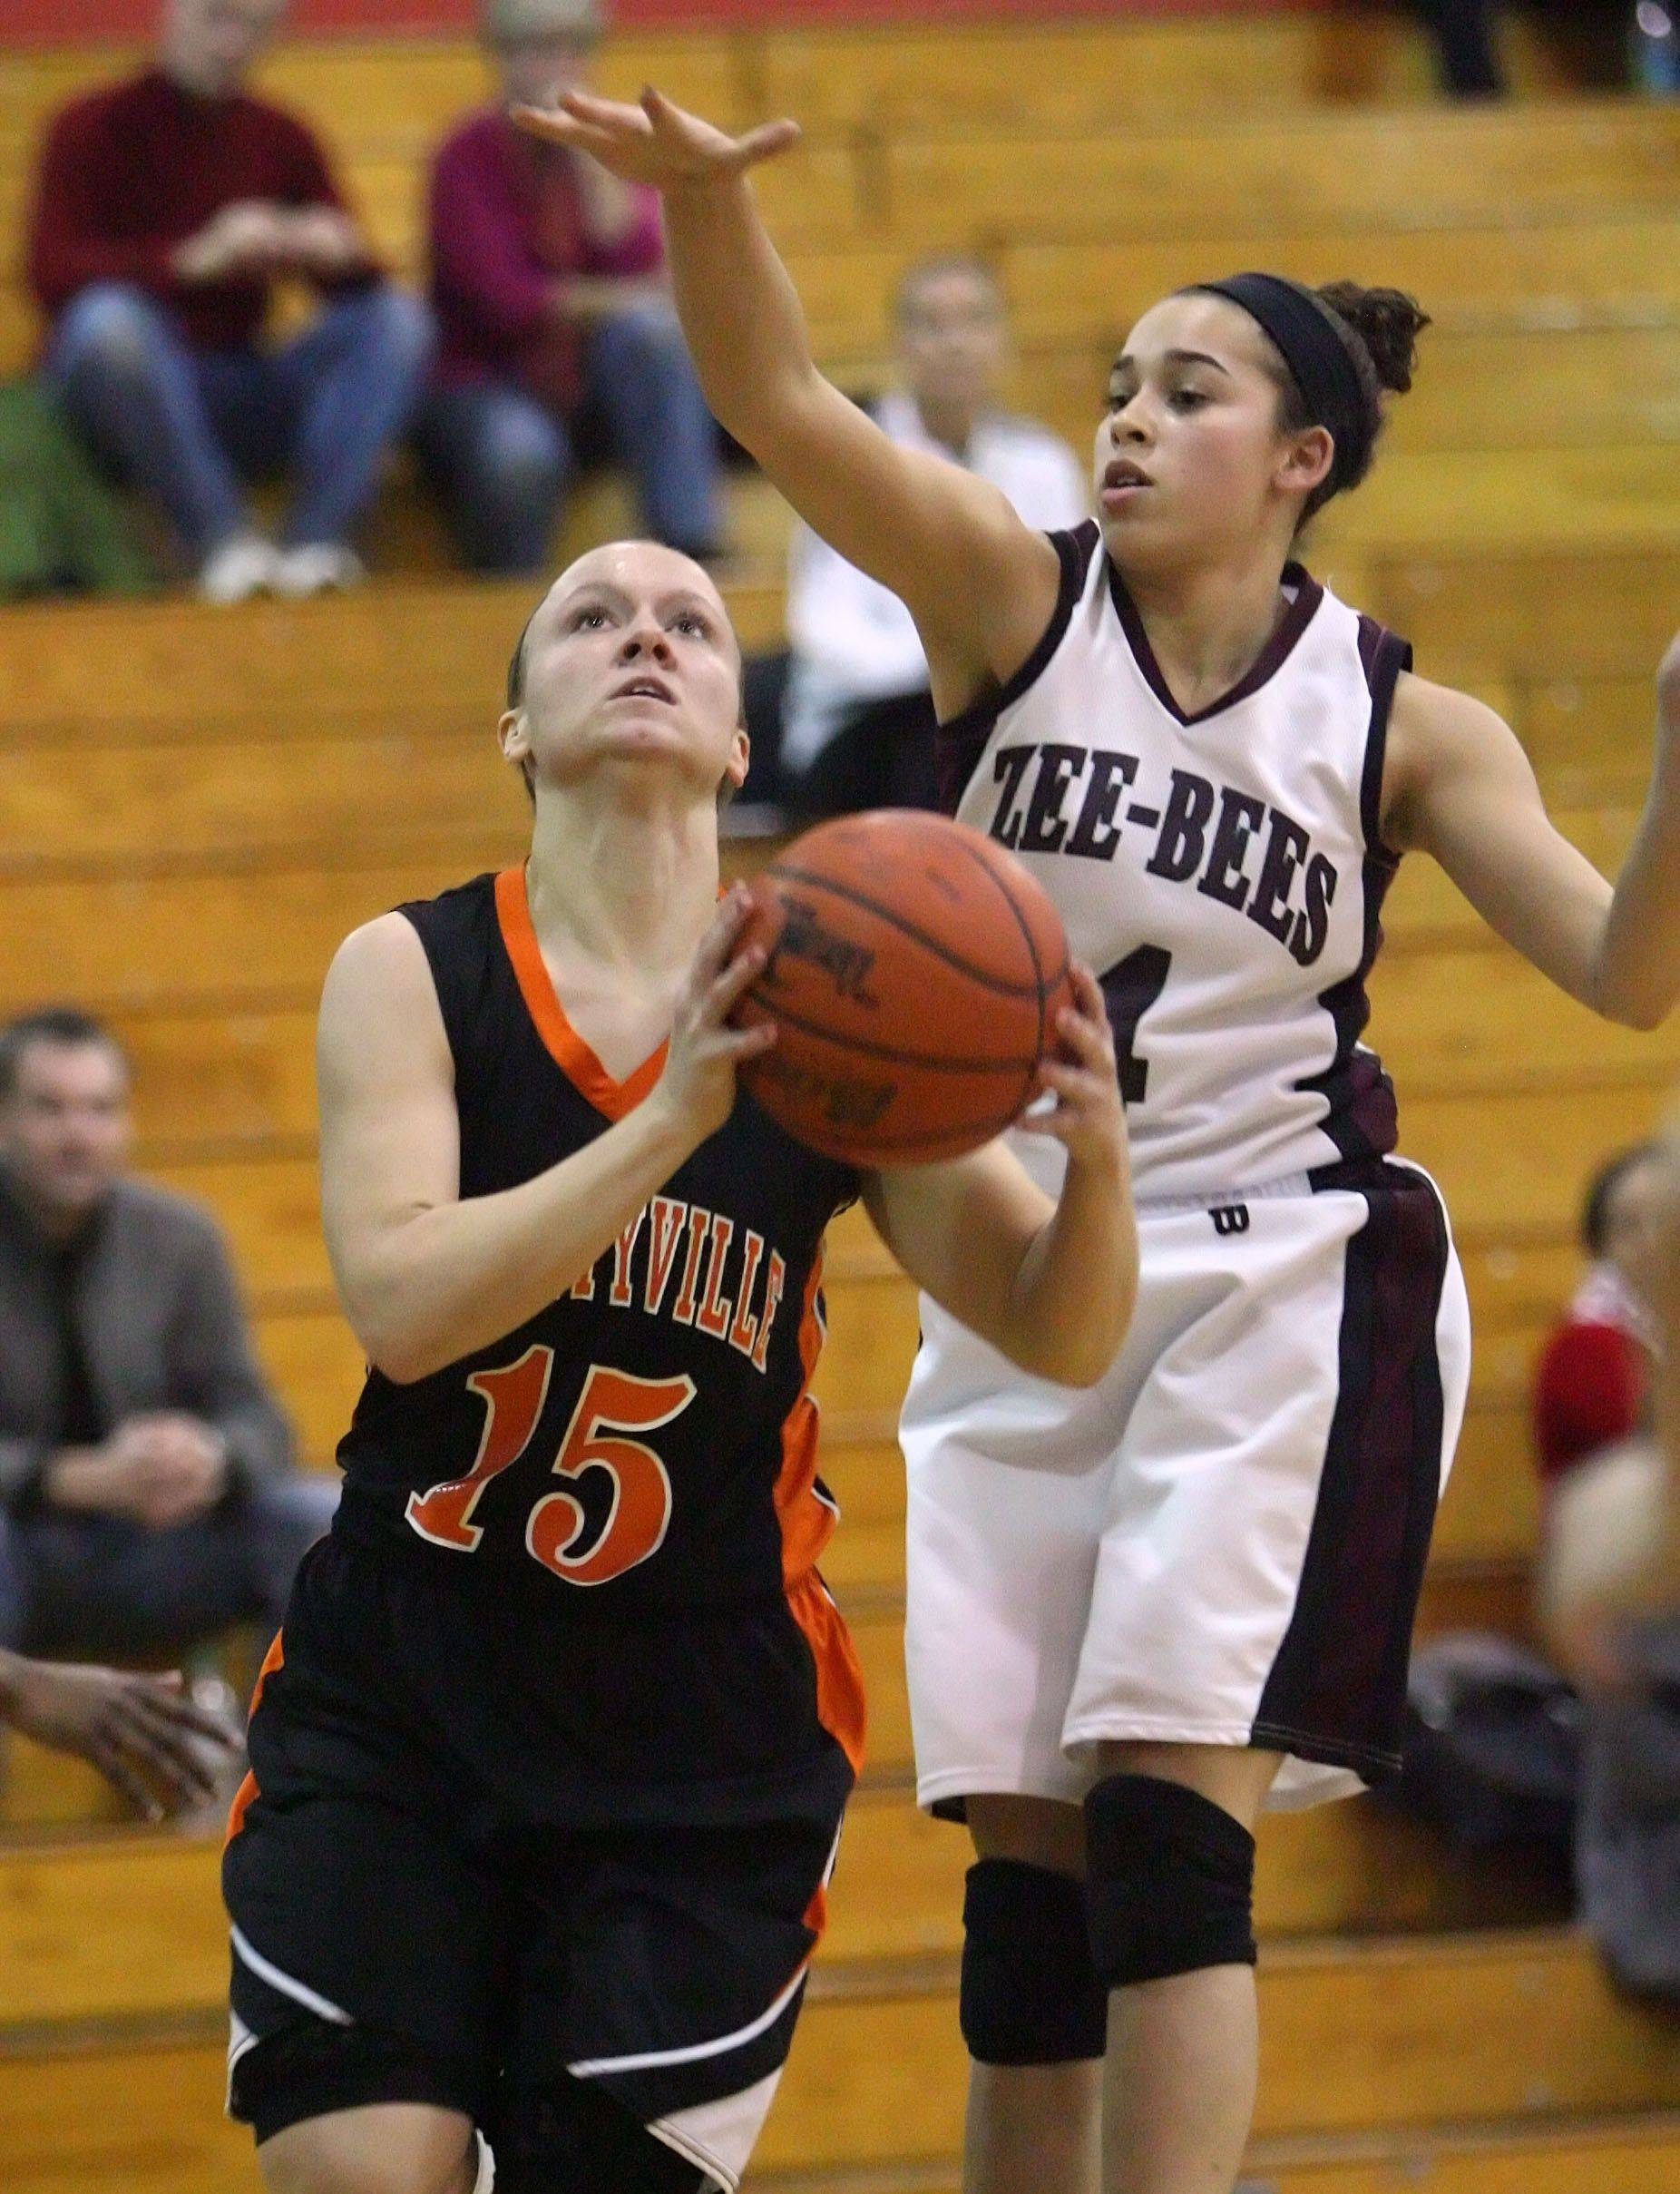 Libertyville's Alex Haley, left, drives on Zion-Benton's Morgan Franklin on Wednesday night.